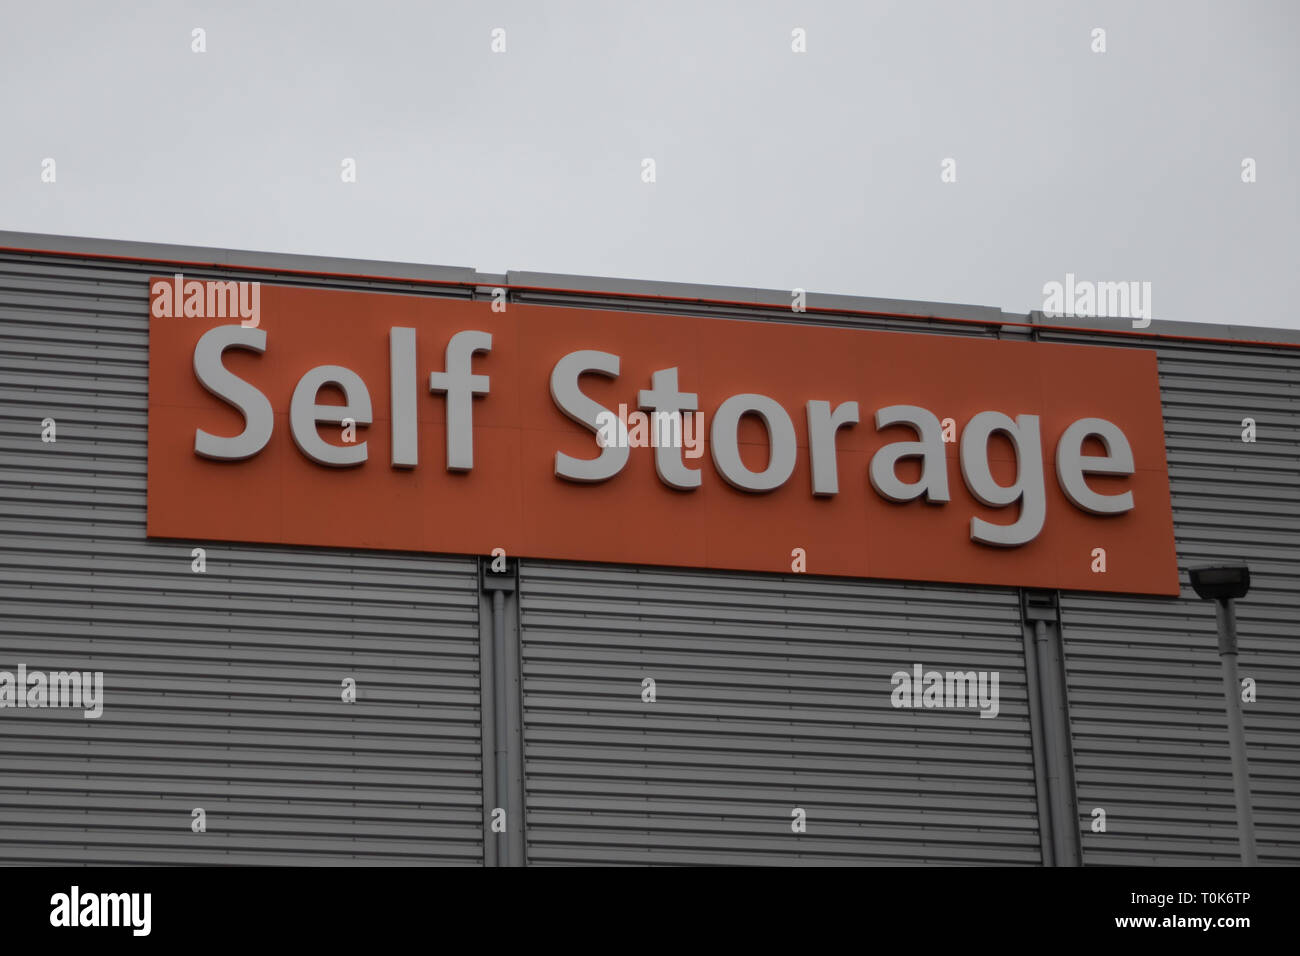 Self storage sign board - Stock Image